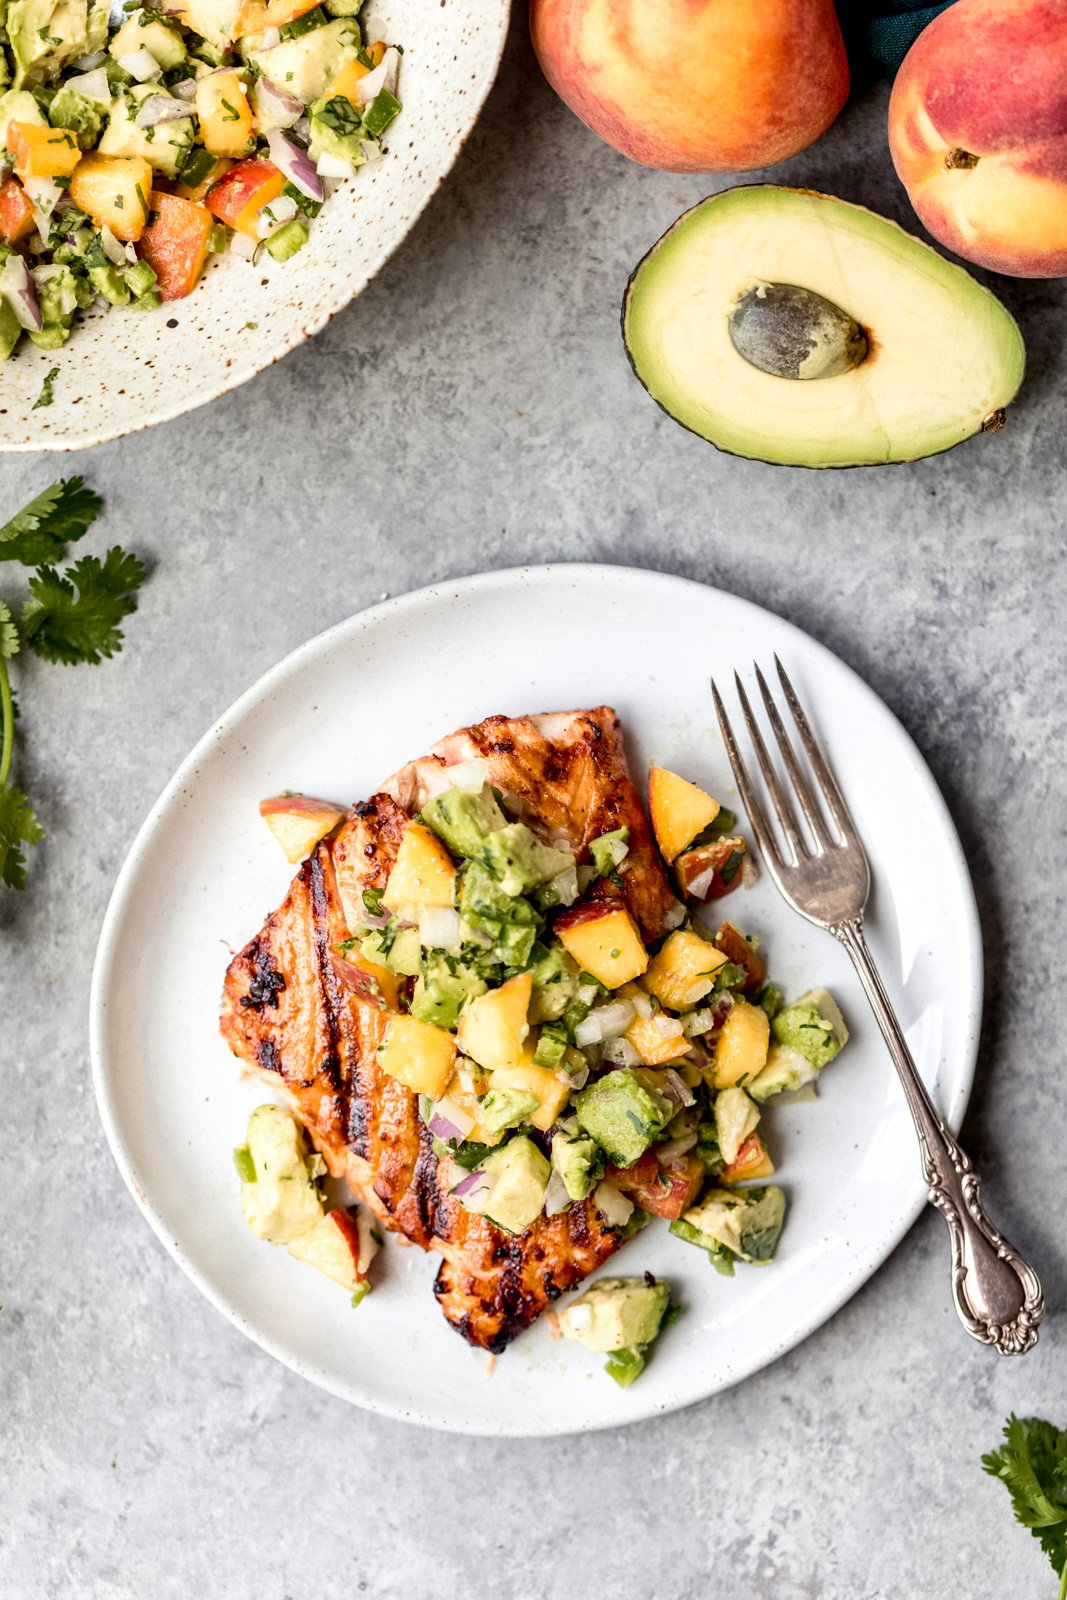 firecracker salmon topped with peach avocado salsa on a plate with a fork next to half of an avocado and two peaches